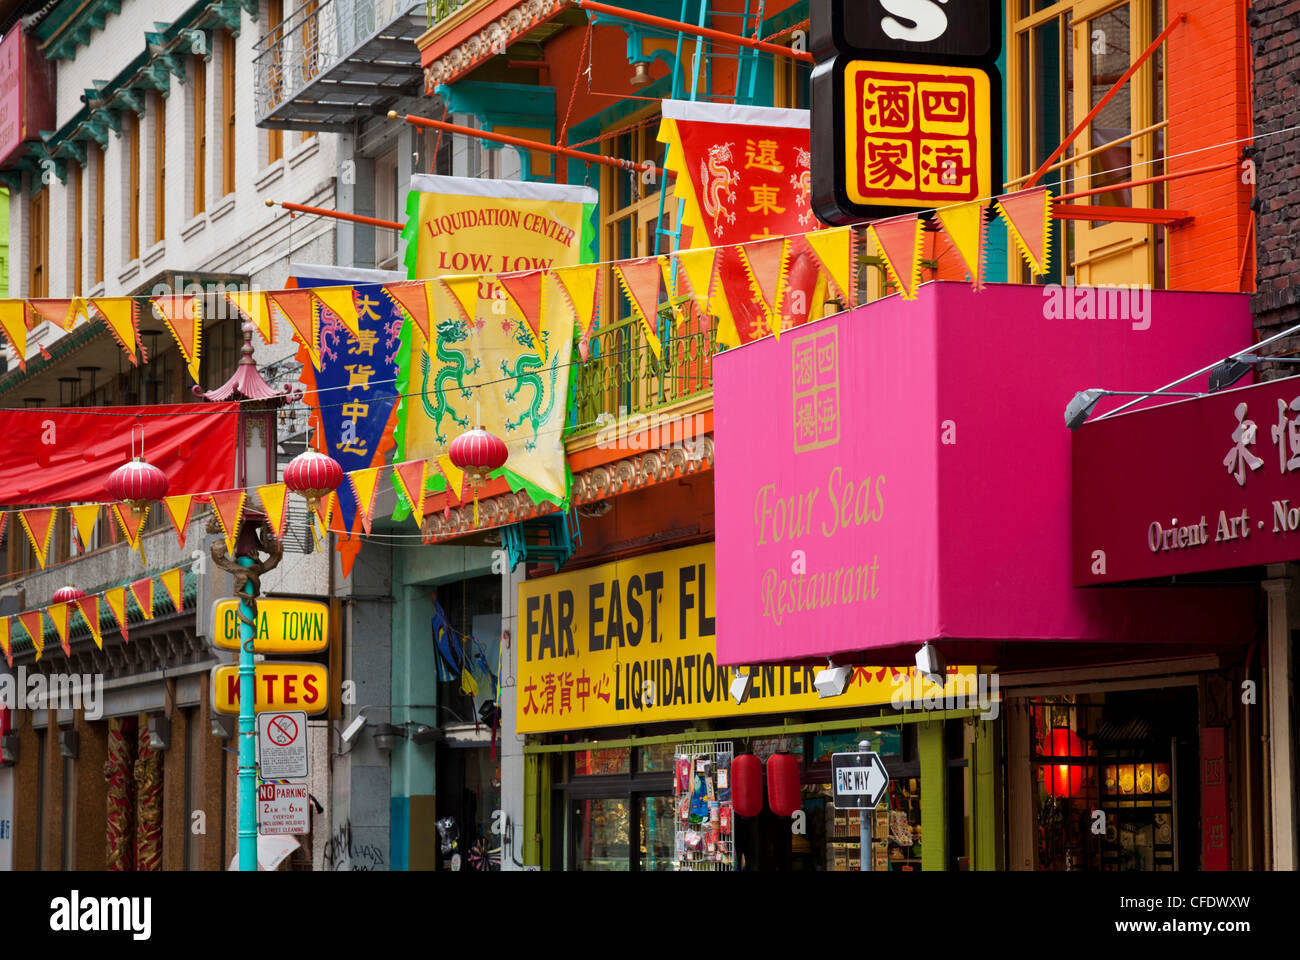 Colourful flags, banners and shopfronts in Chinatown, San Francisco, California, United States of America, - Stock Image